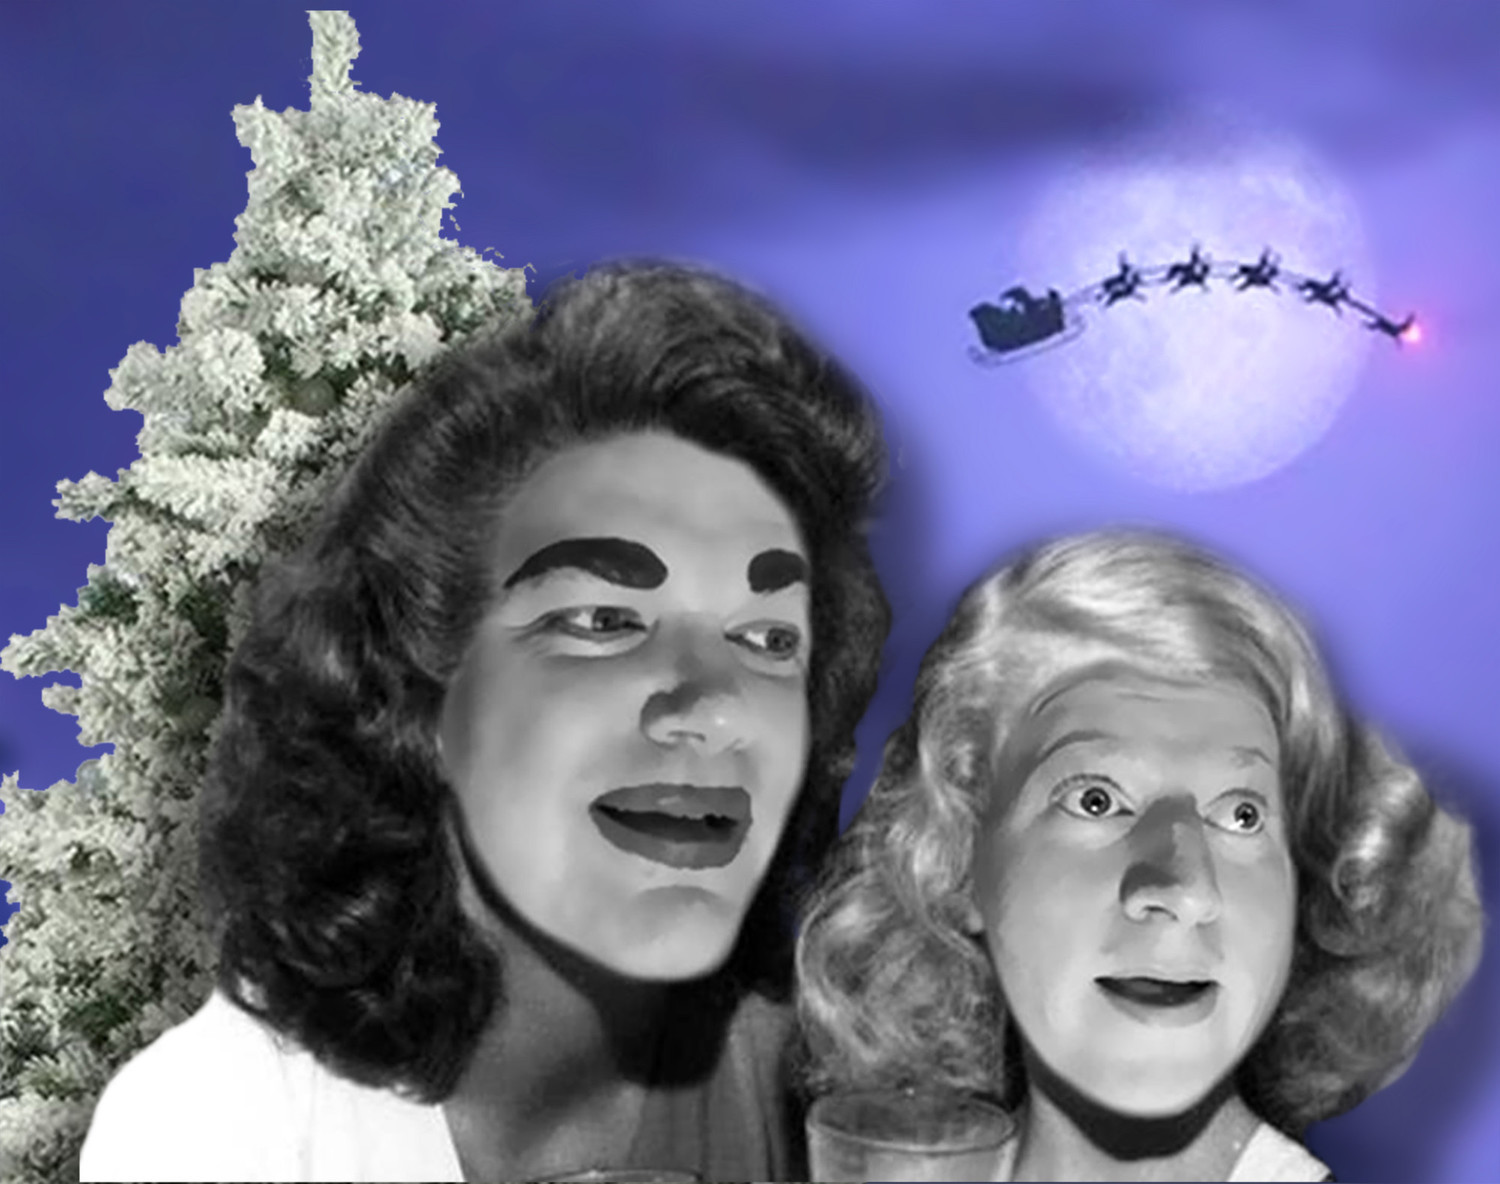 BWW Interview: Joe Bailey & Brandy Joe Plambeck of MERRY CHRISTMAS TO EVERYONE! (EXCEPT CHRISTINA) at The Ringwald Theatre